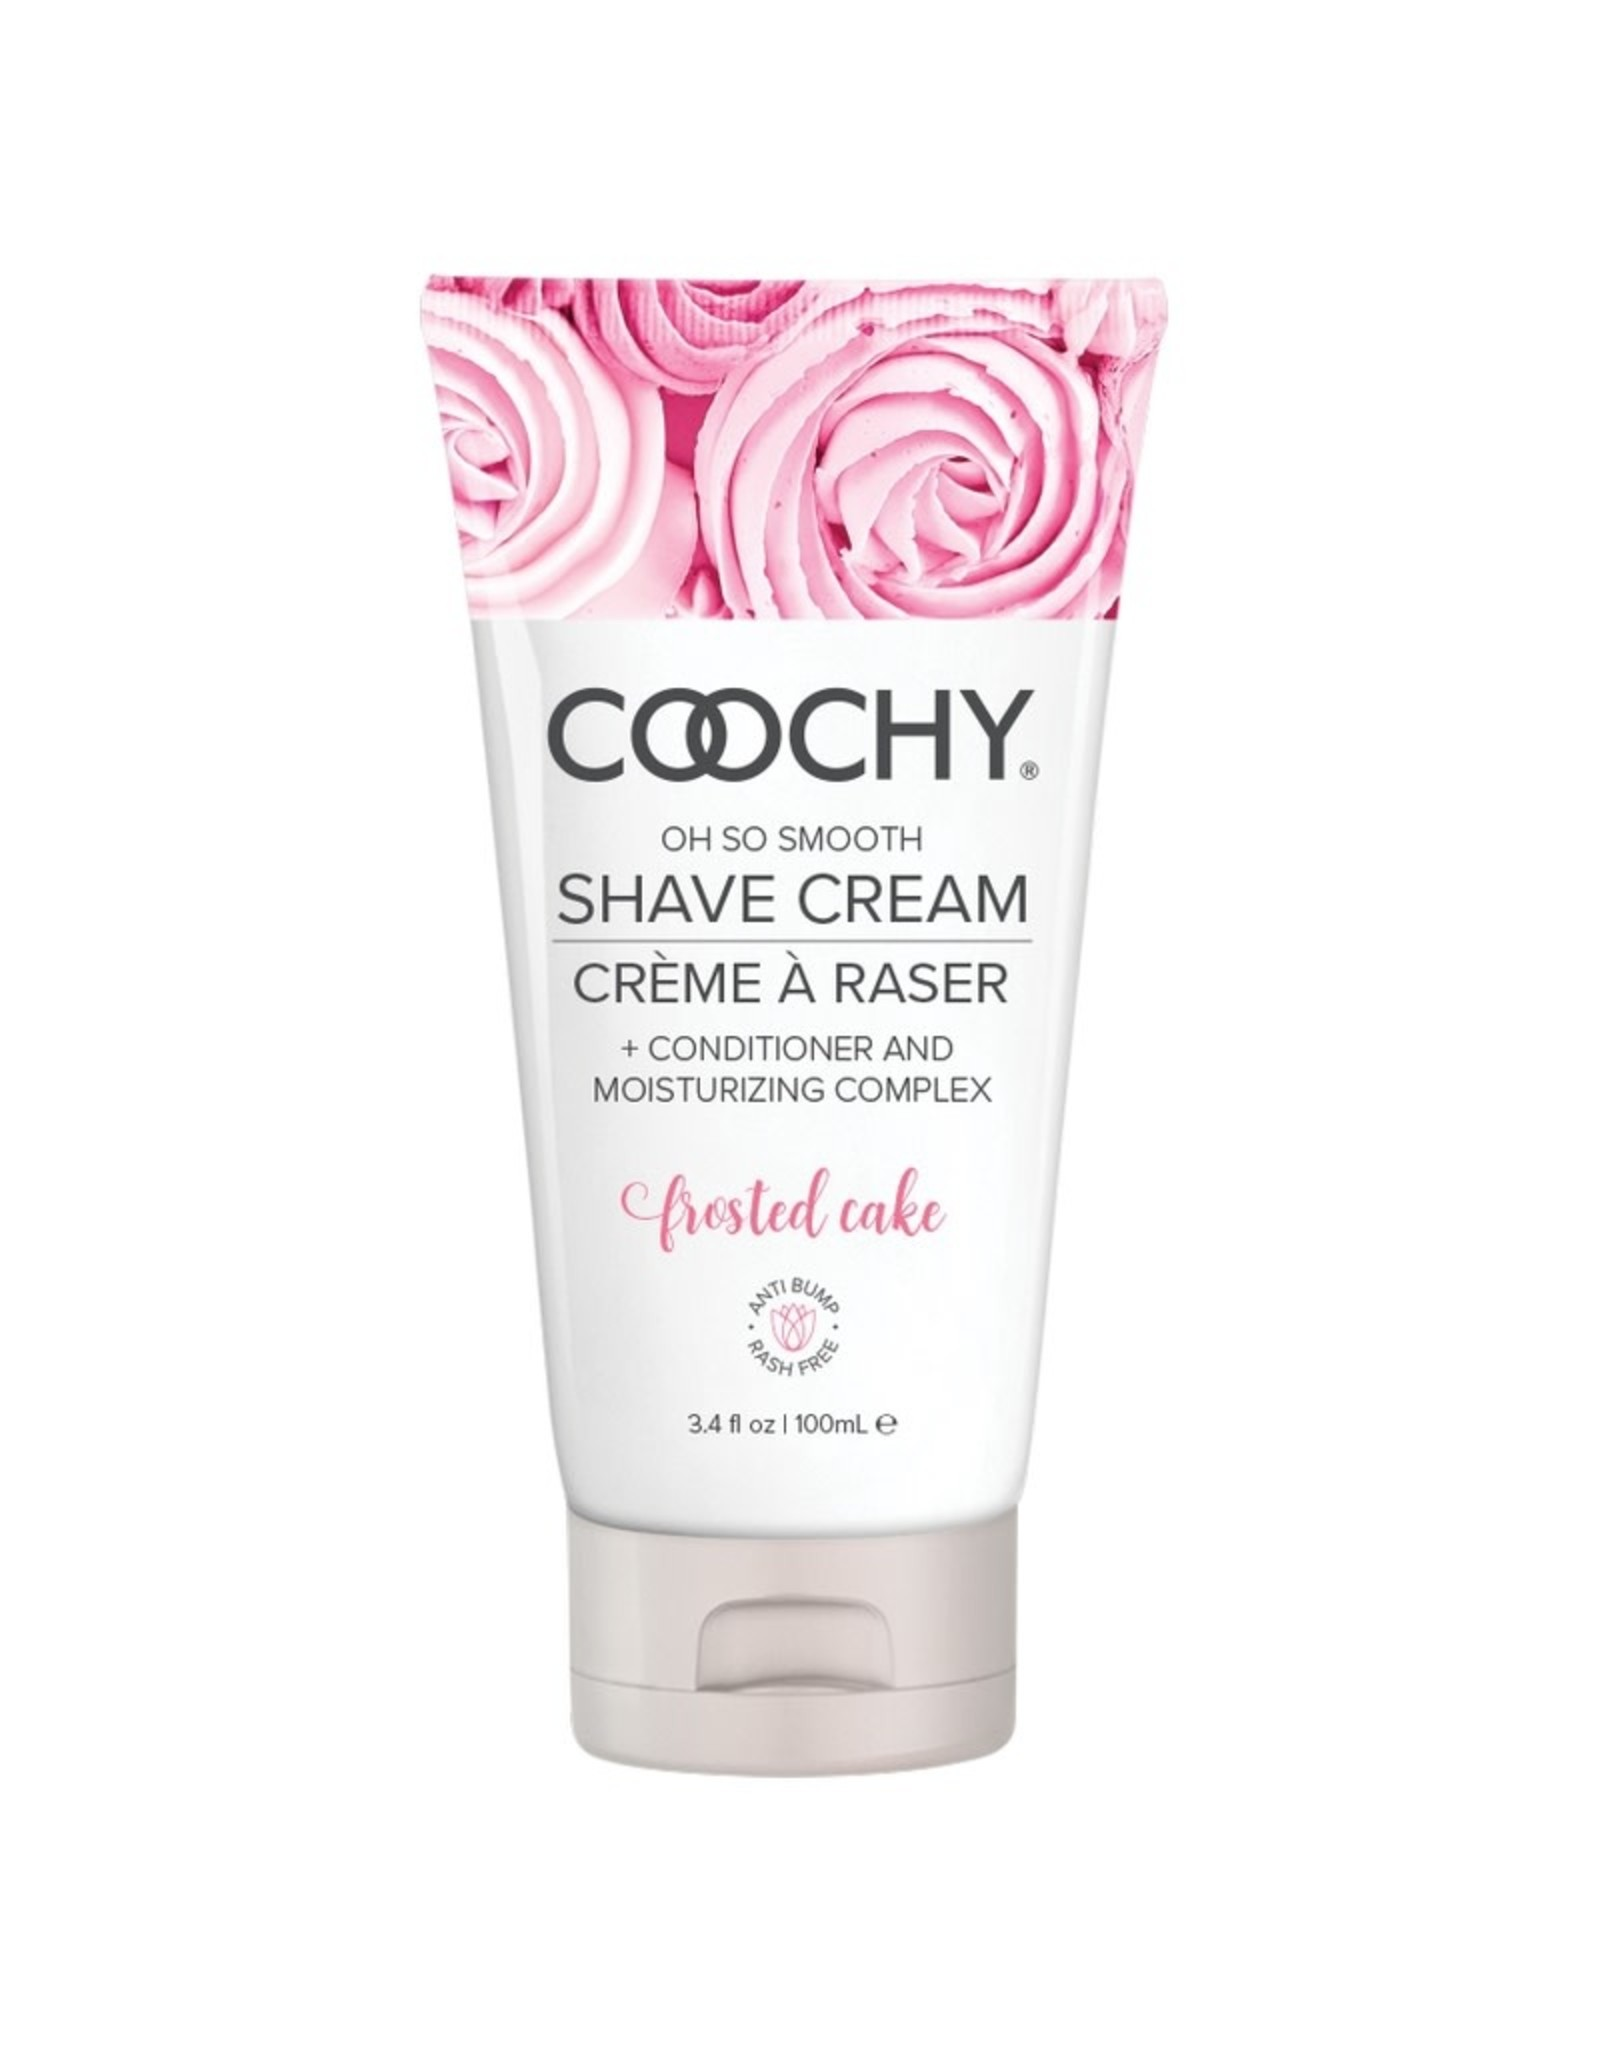 Coochy Coochy Cream  Frosted Cake 3.4 oz